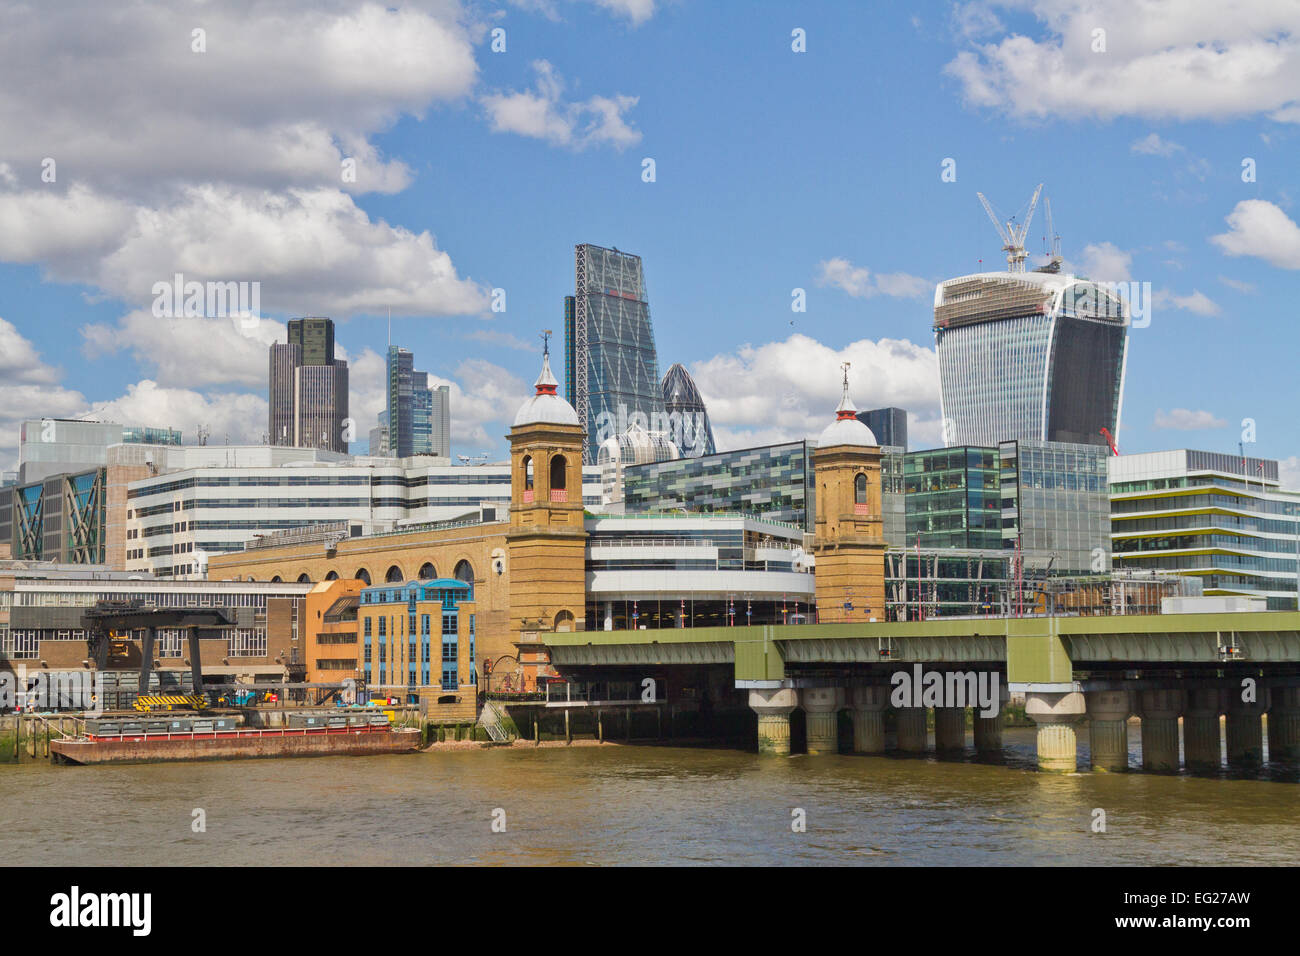 Cannon Street Station and the City of London seen from the River Thames - Stock Image